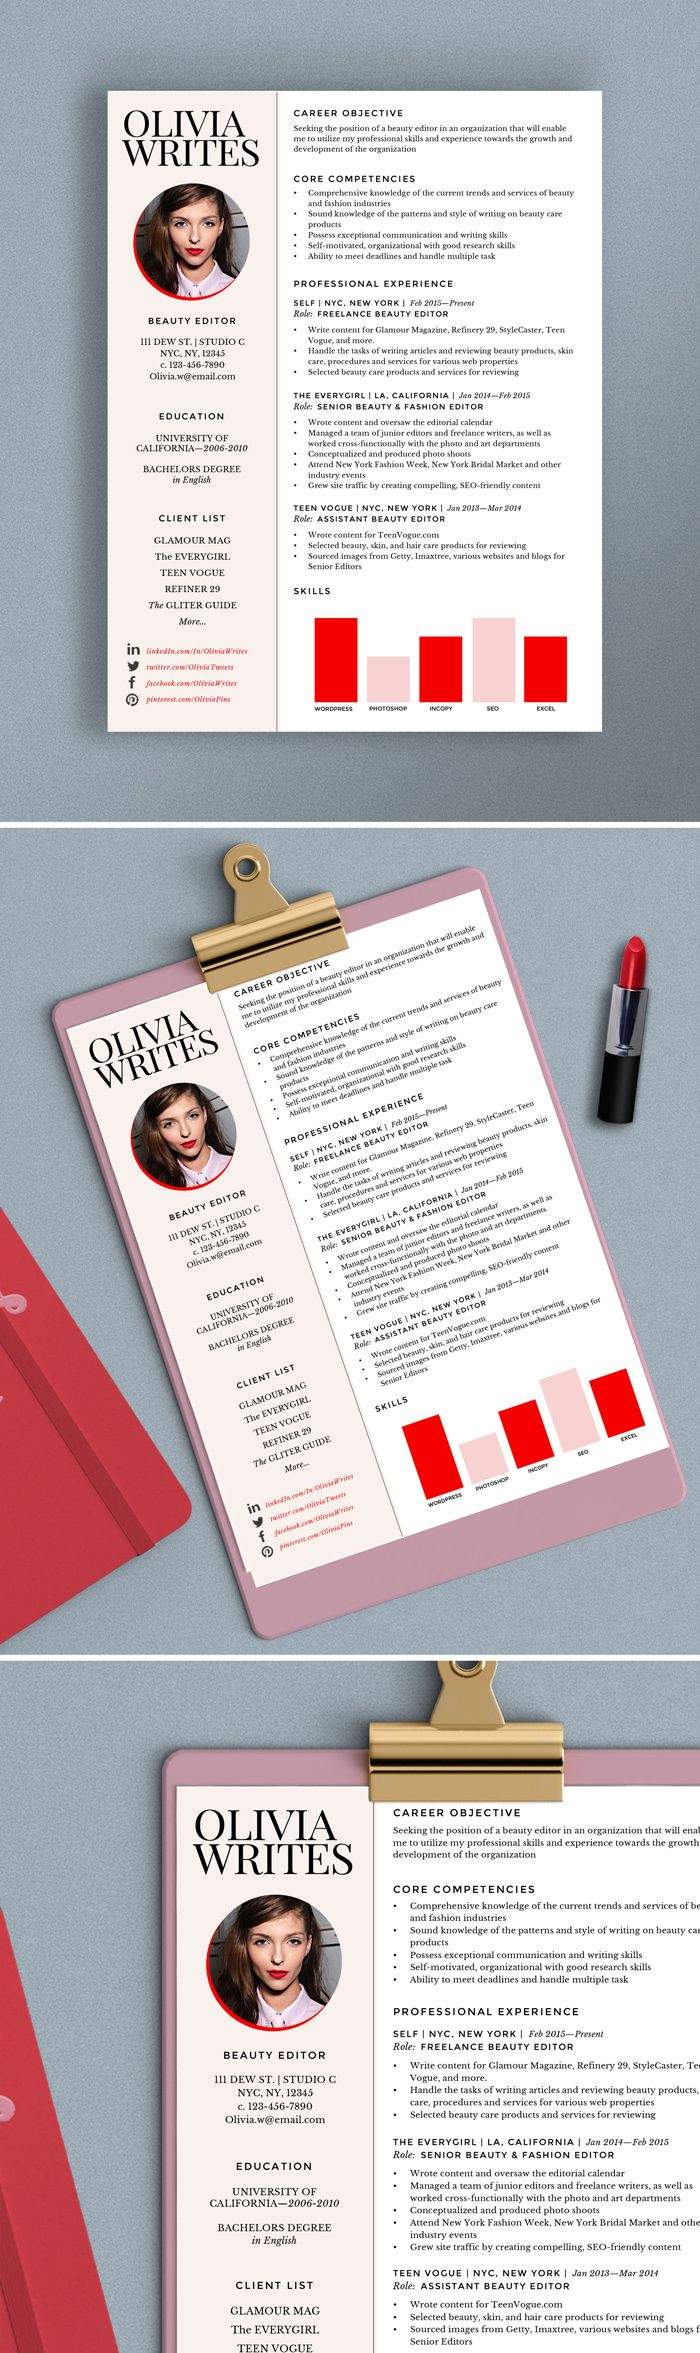 17 best ideas about fashion resume fashion cv cv fully editable modern feminine reacutesumeacute template design beauty editor fashion editor writer